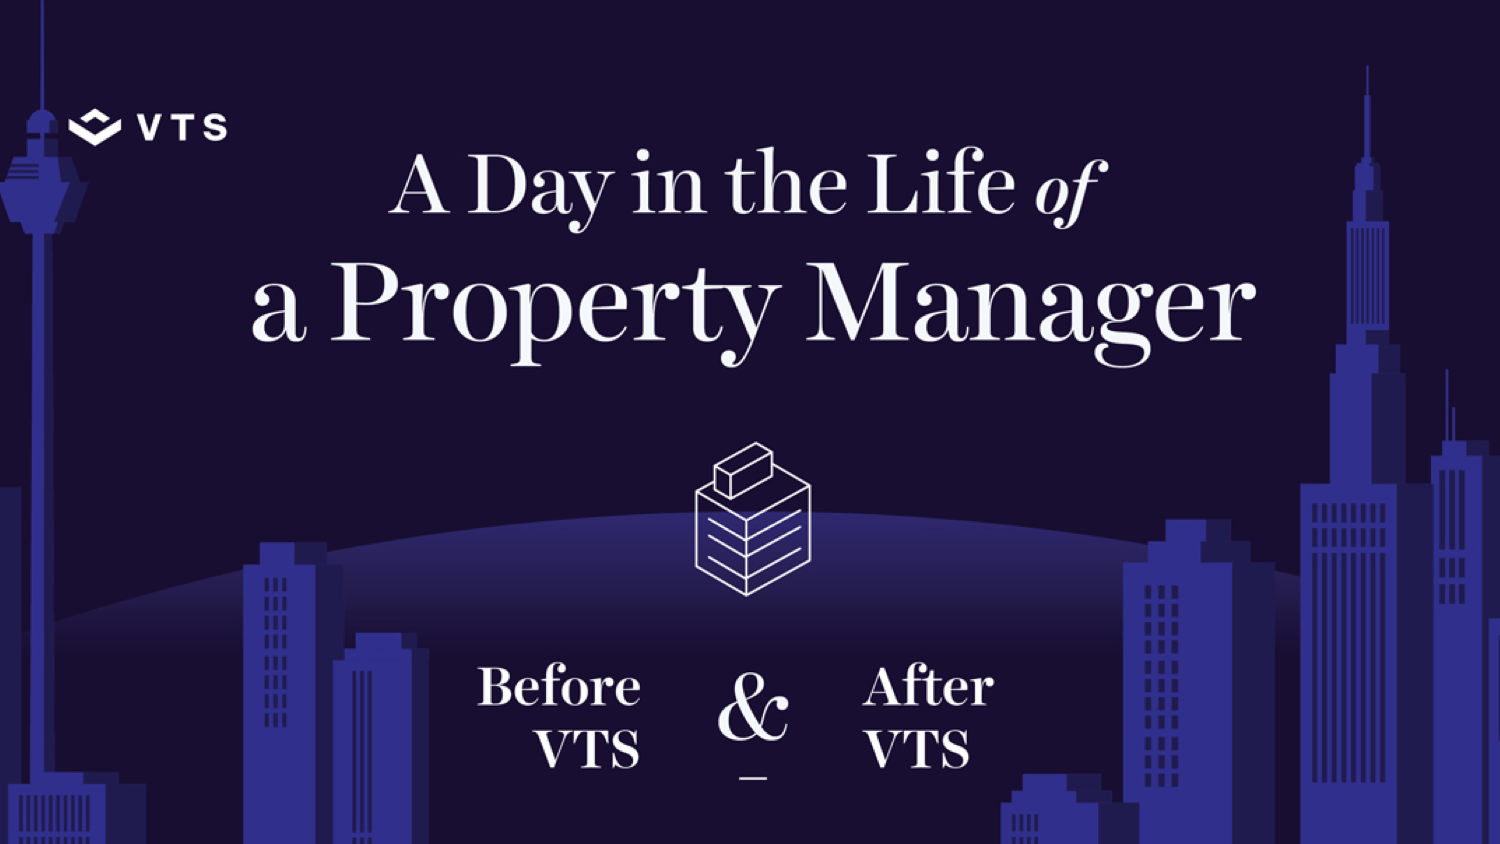 A Day in the Life of a Property Manager Before and After VTS Infographic